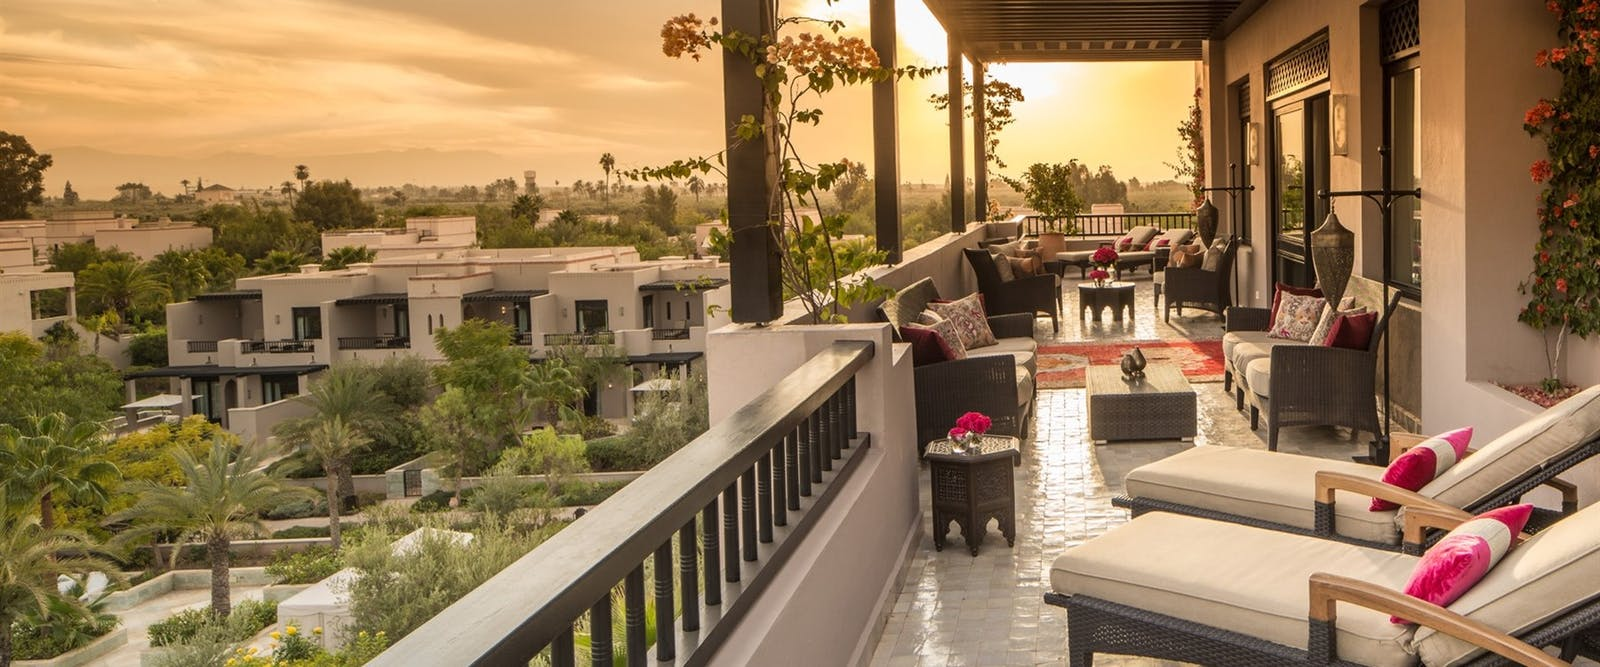 Two Bedroom Panoramic Presidential Suite at Four Seasons Marrakech, Morocco